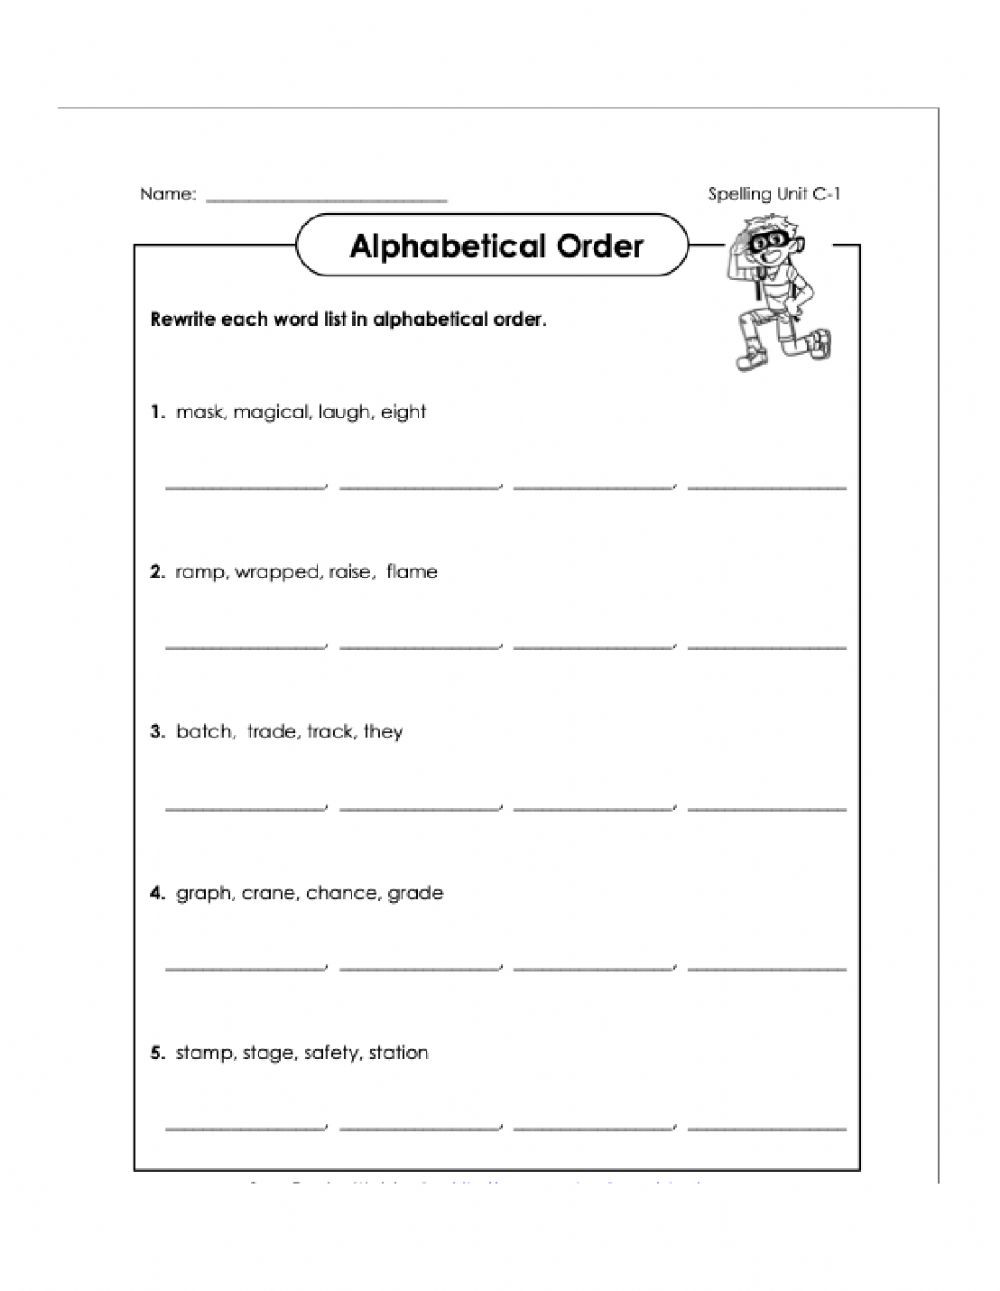 Alphabetical order Worksheets Grade 4 Alphabetical order C1 4th Worksheet